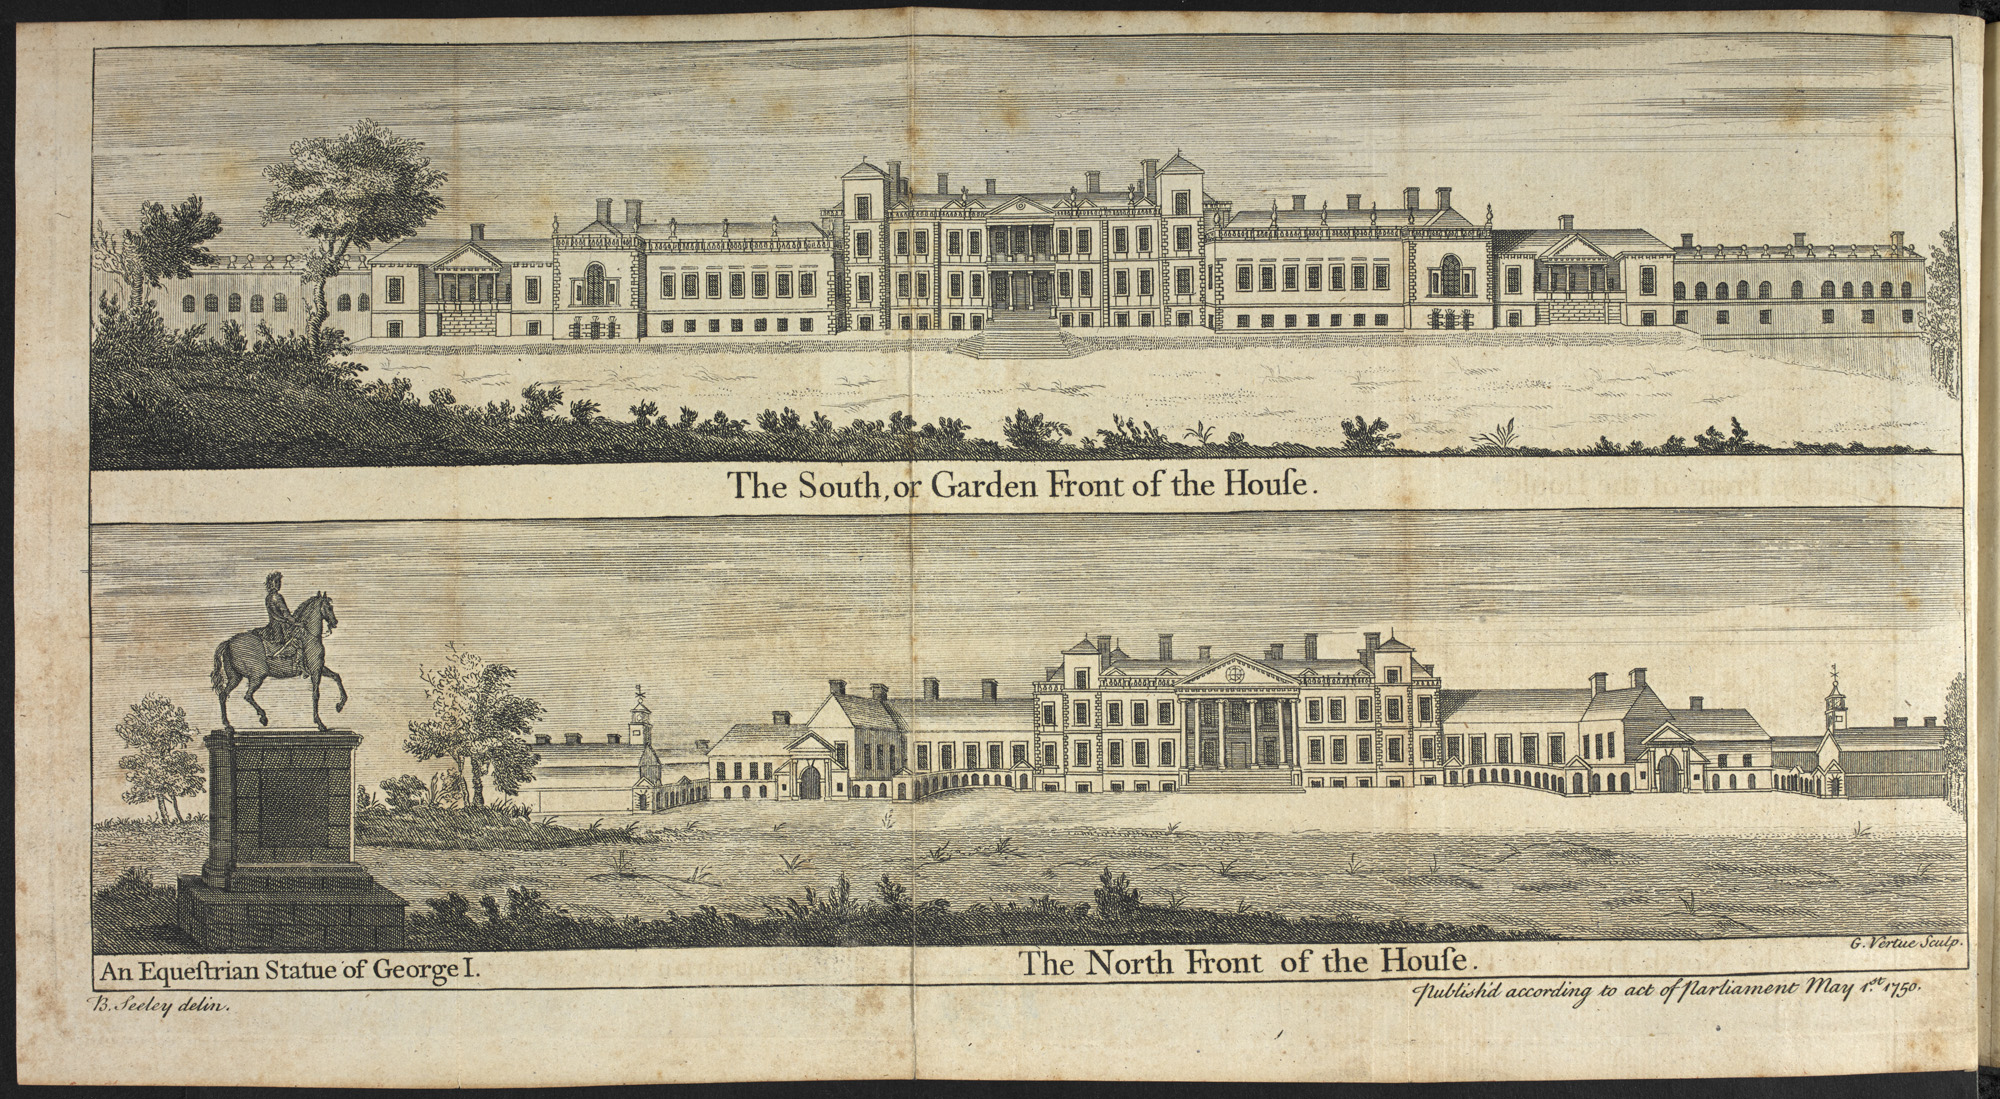 Two views of the house at Stowe, from different vantage points